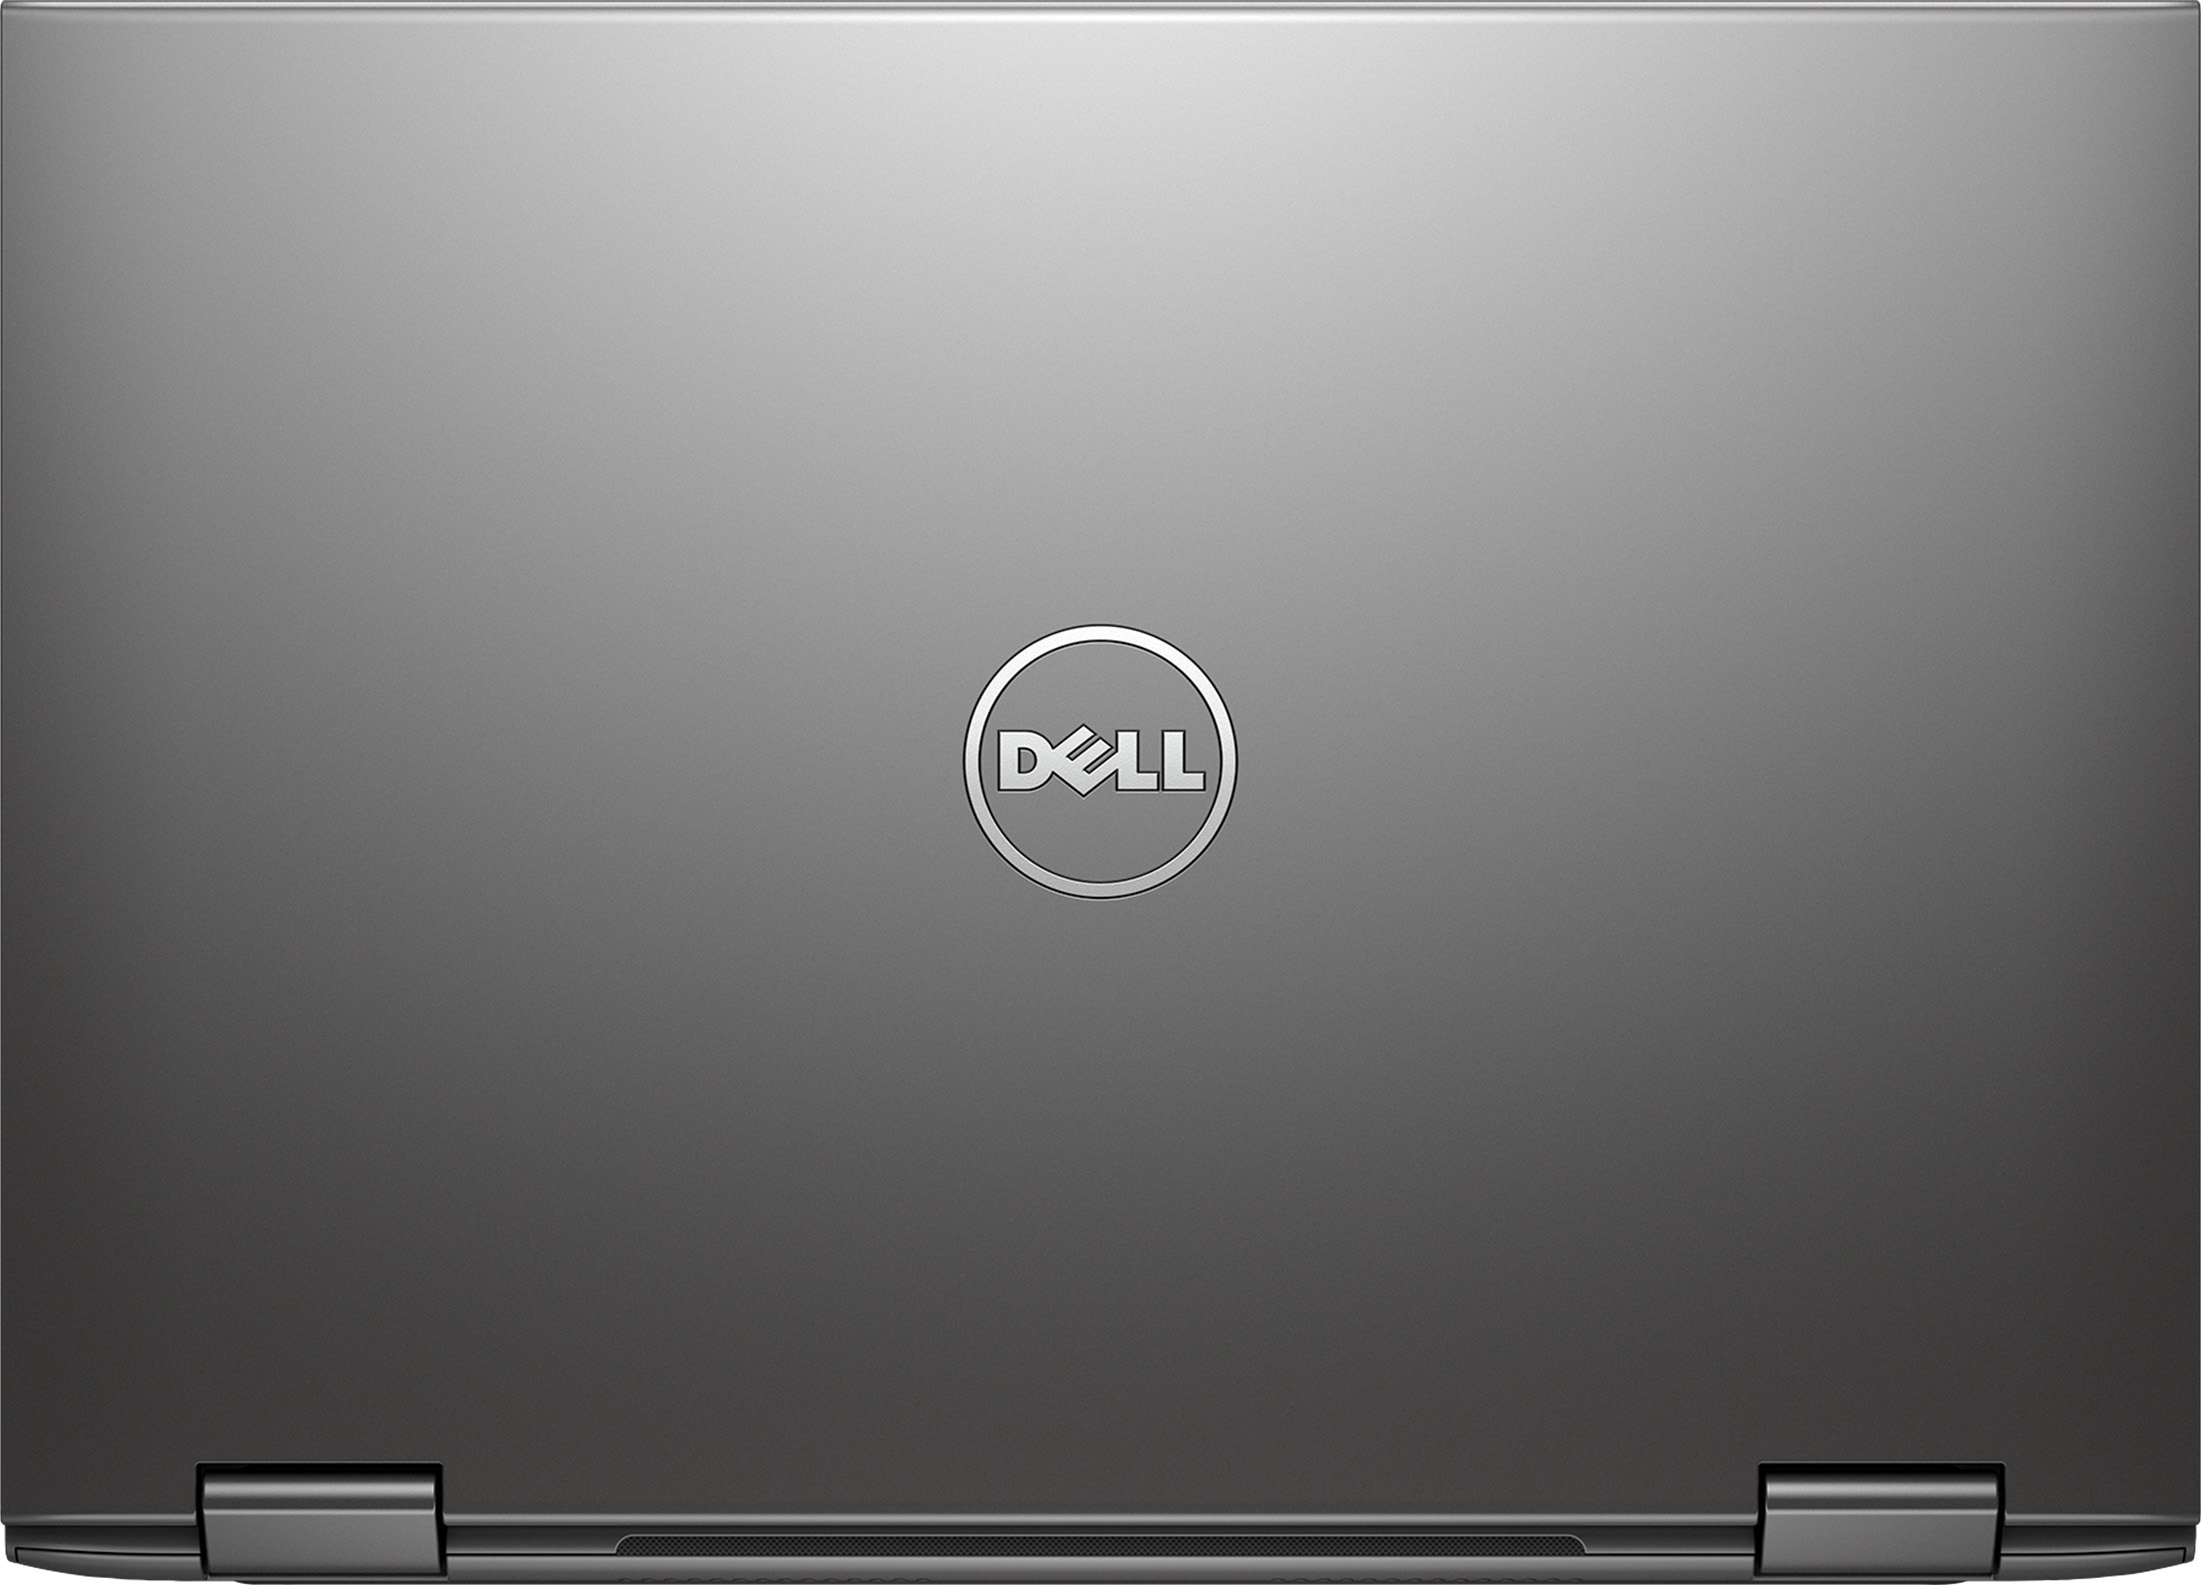 dell inspiron 13 signature edition 2 in 1 pc opened showing back of computer